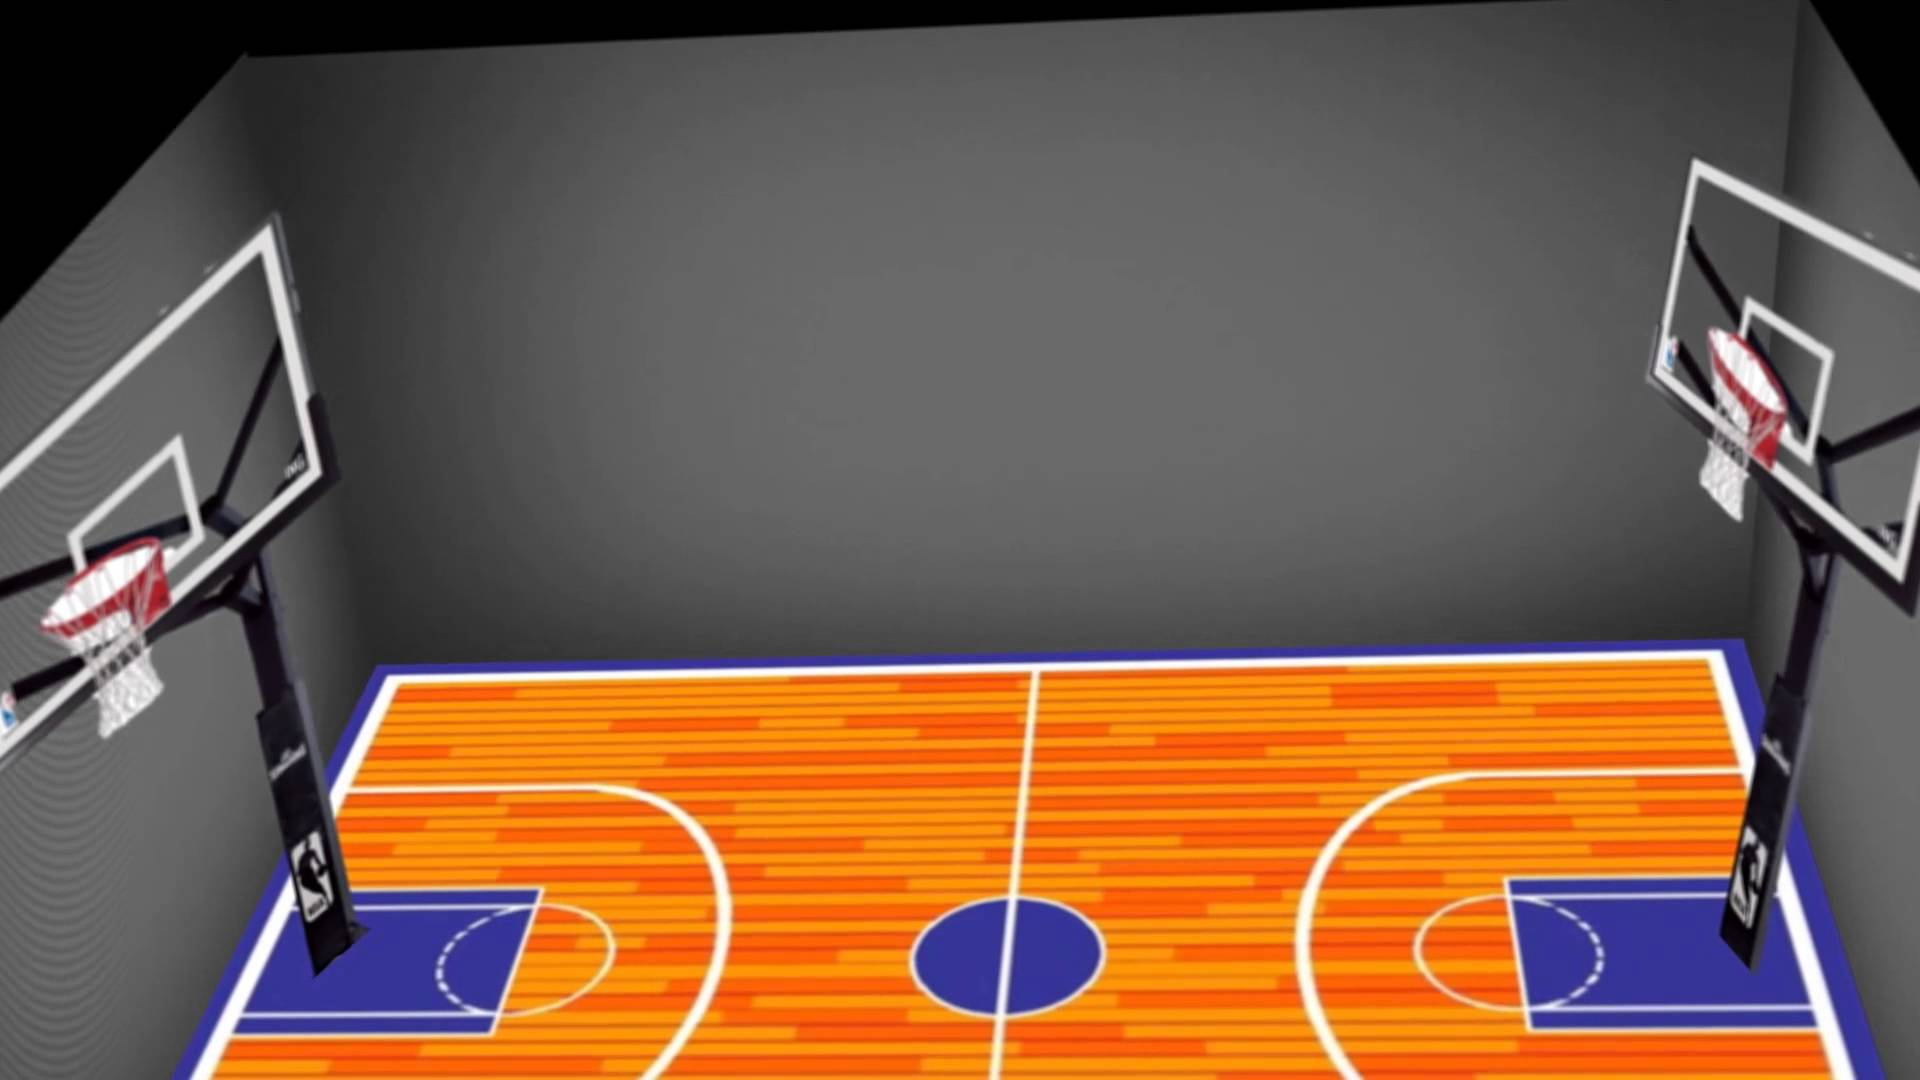 1920x1080 Basic 3d Basketball Court